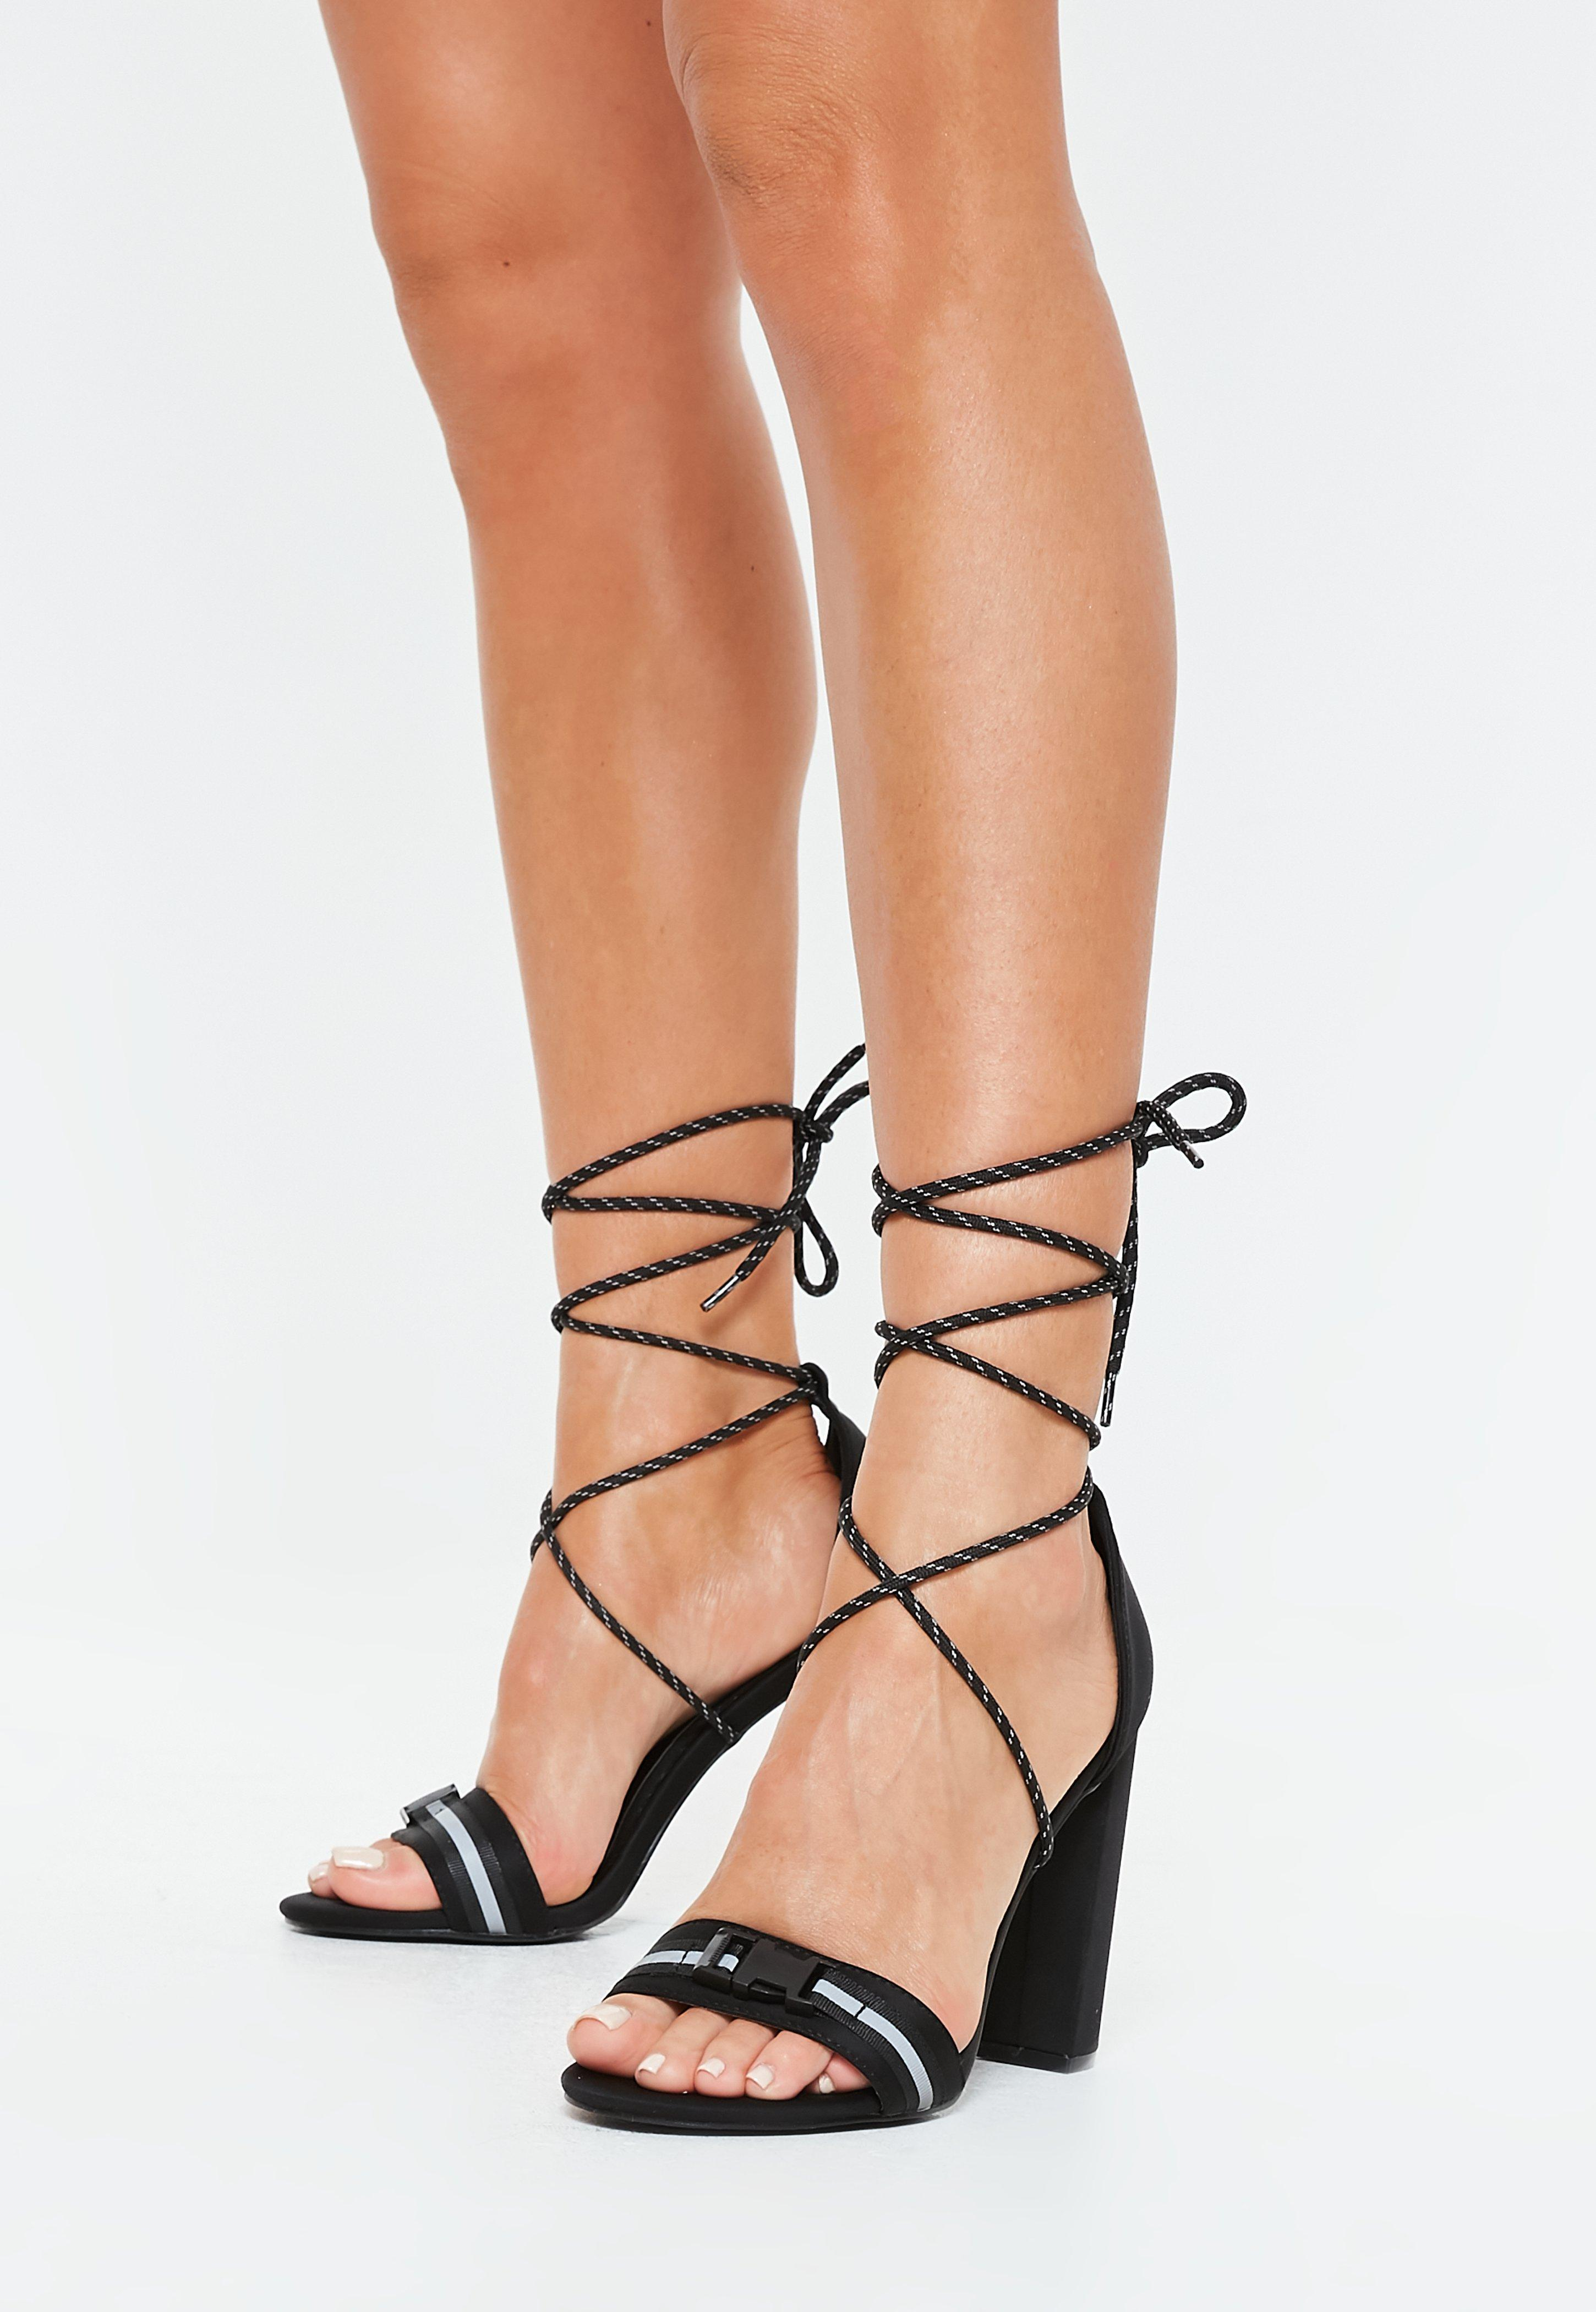 75e862c880 Missguided Black Reflective Strap Block Heel Sandals in Black - Lyst